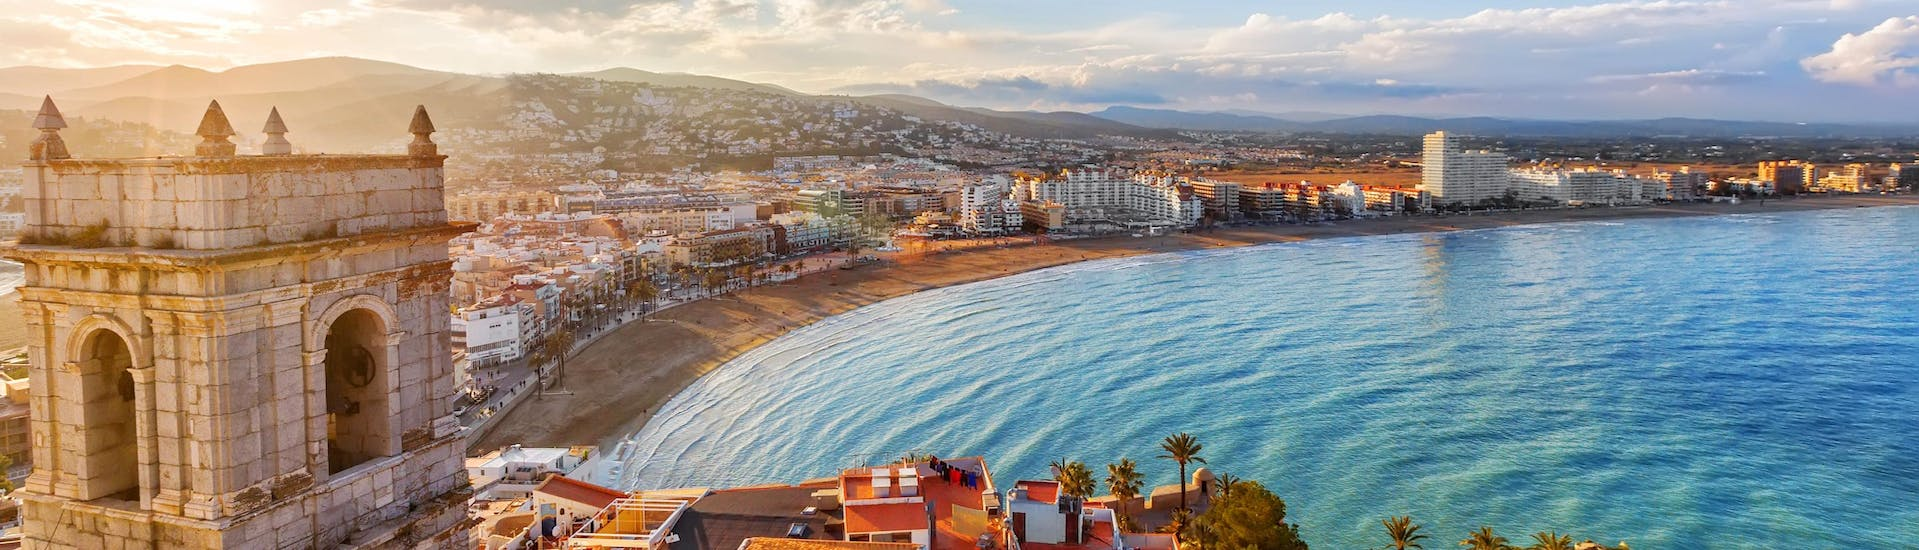 An image of the beatiful beachfront you get to see when riding a jet ski or doing other water sports activities in Valencia.